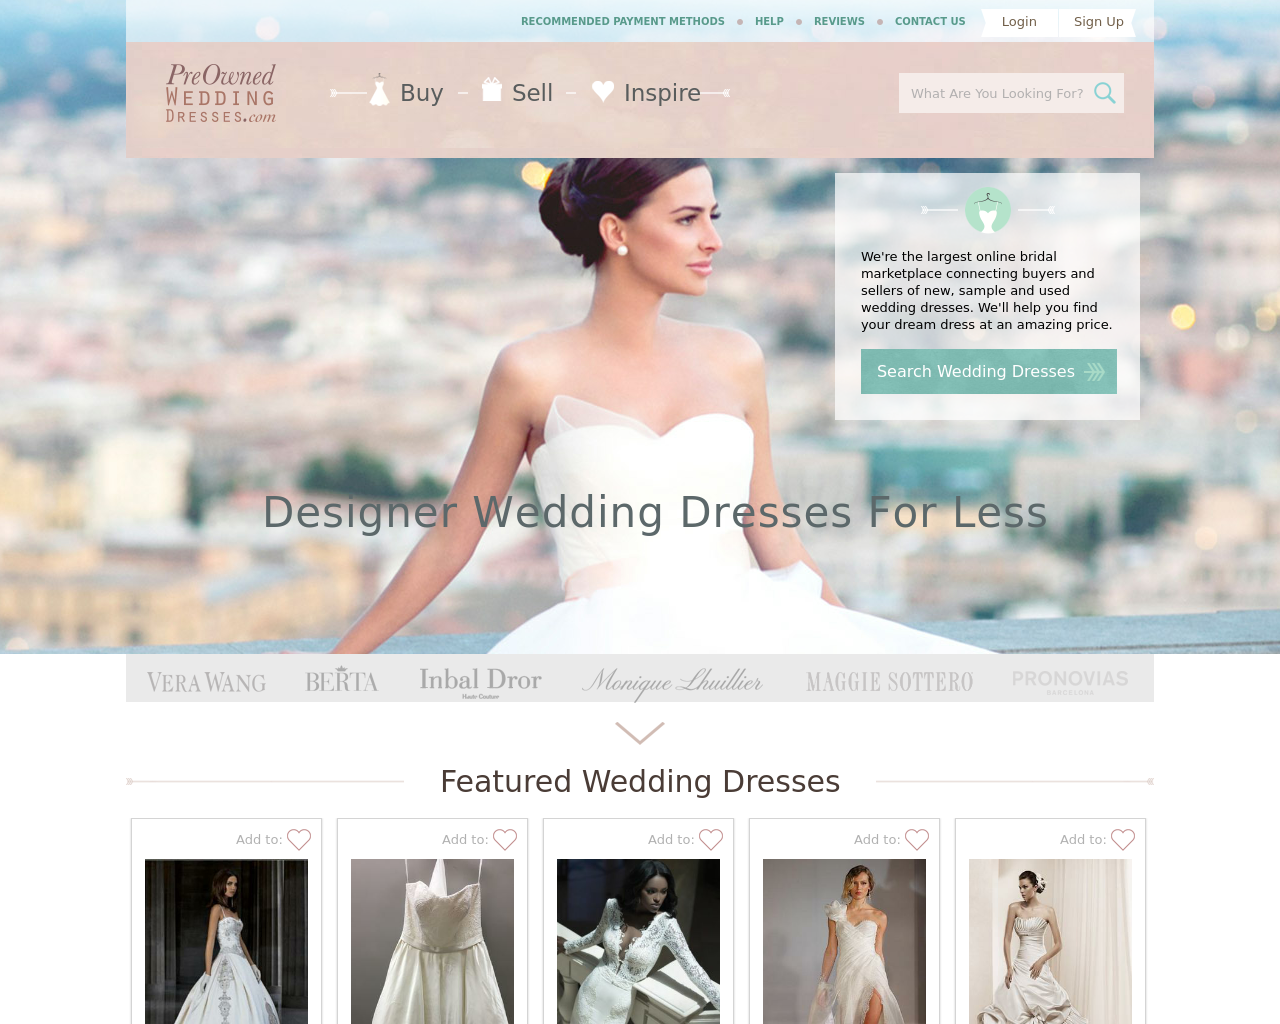 Preownedweddingdresses.com-Advertising-Reviews-Pricing